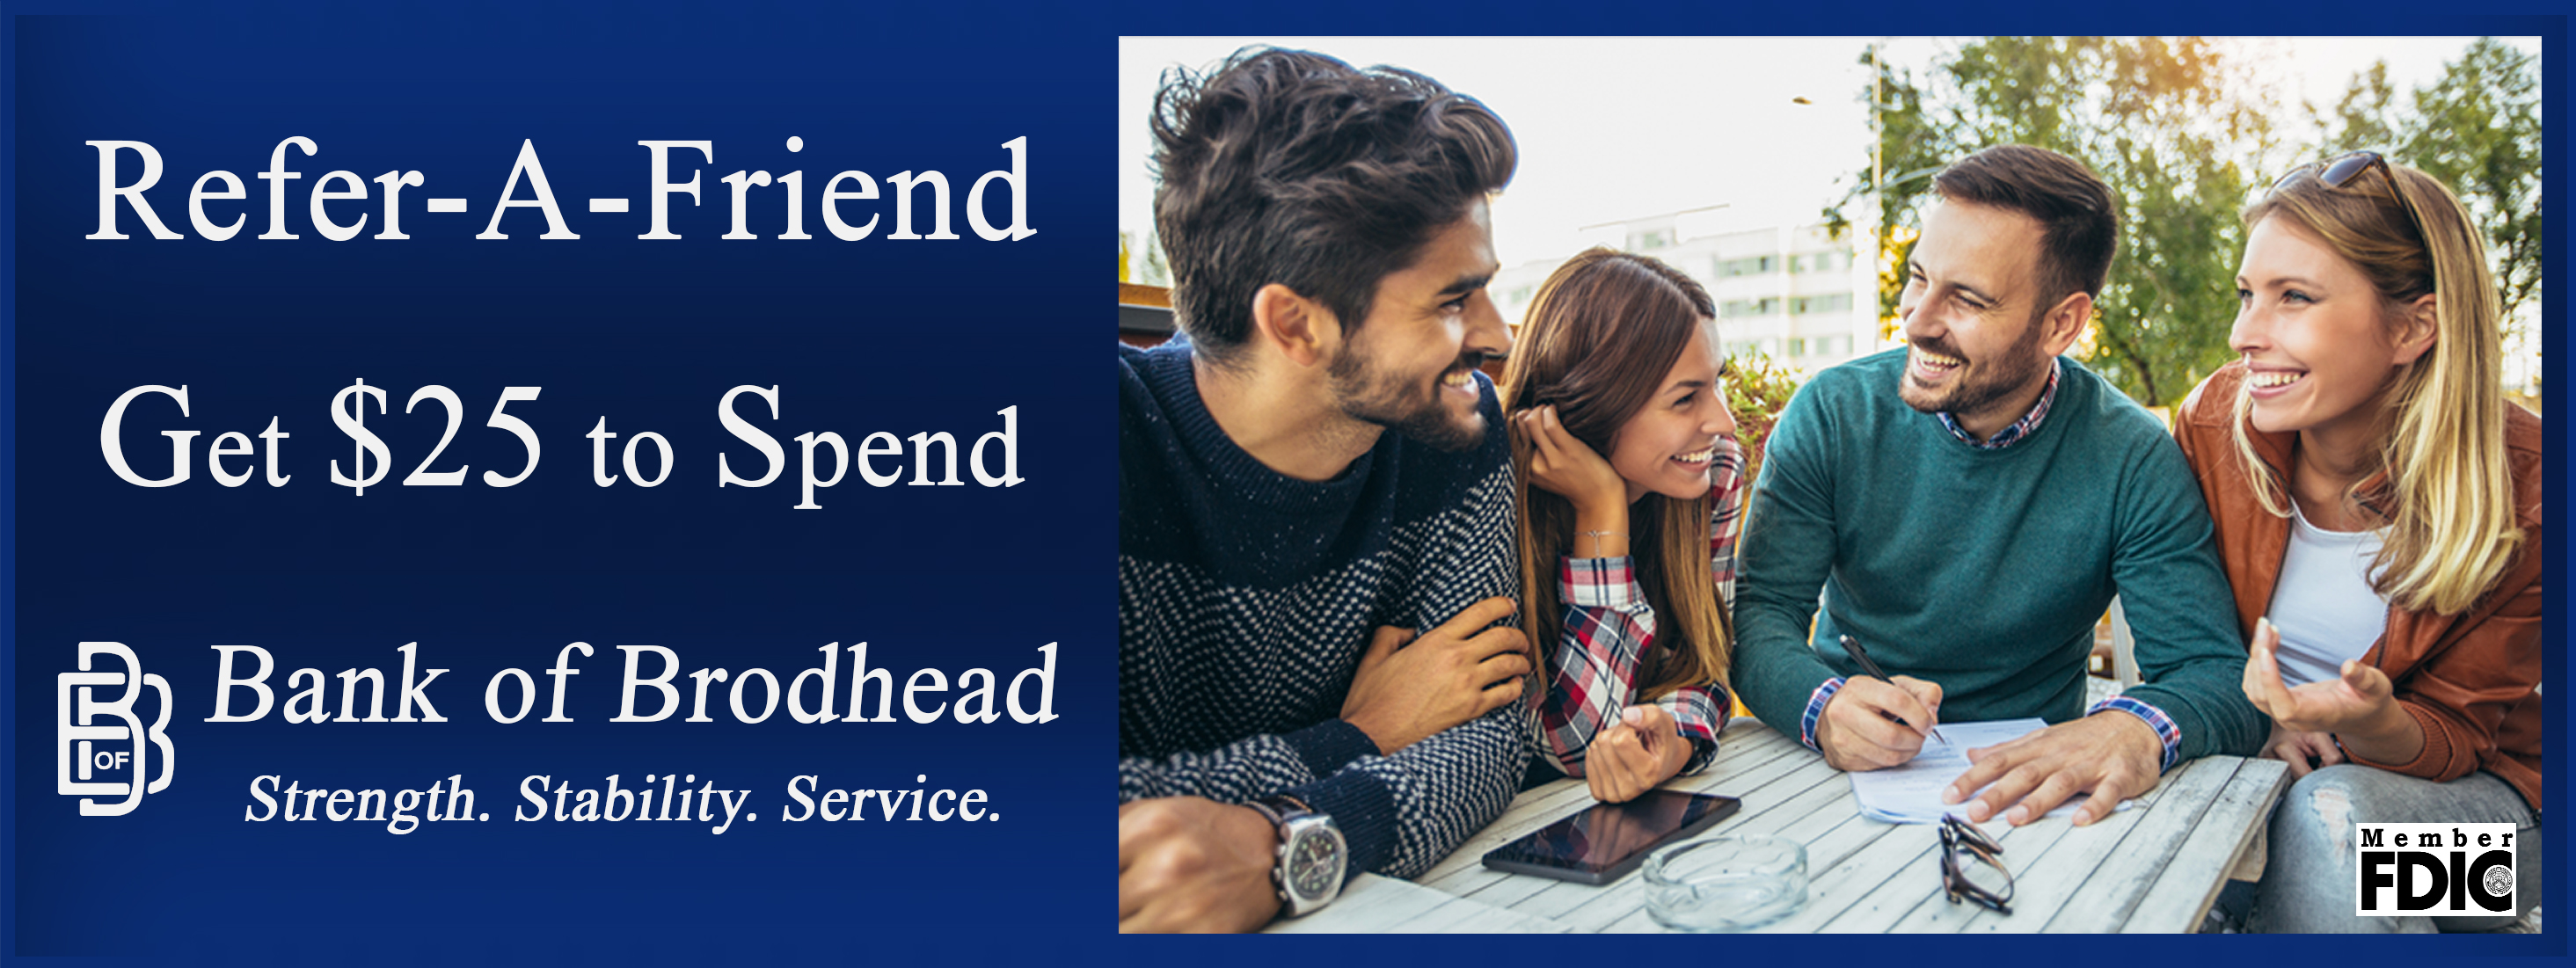 Refer-A-Friend Get $25 to Spend Bank of Brodhead Strength. Stability. Service.